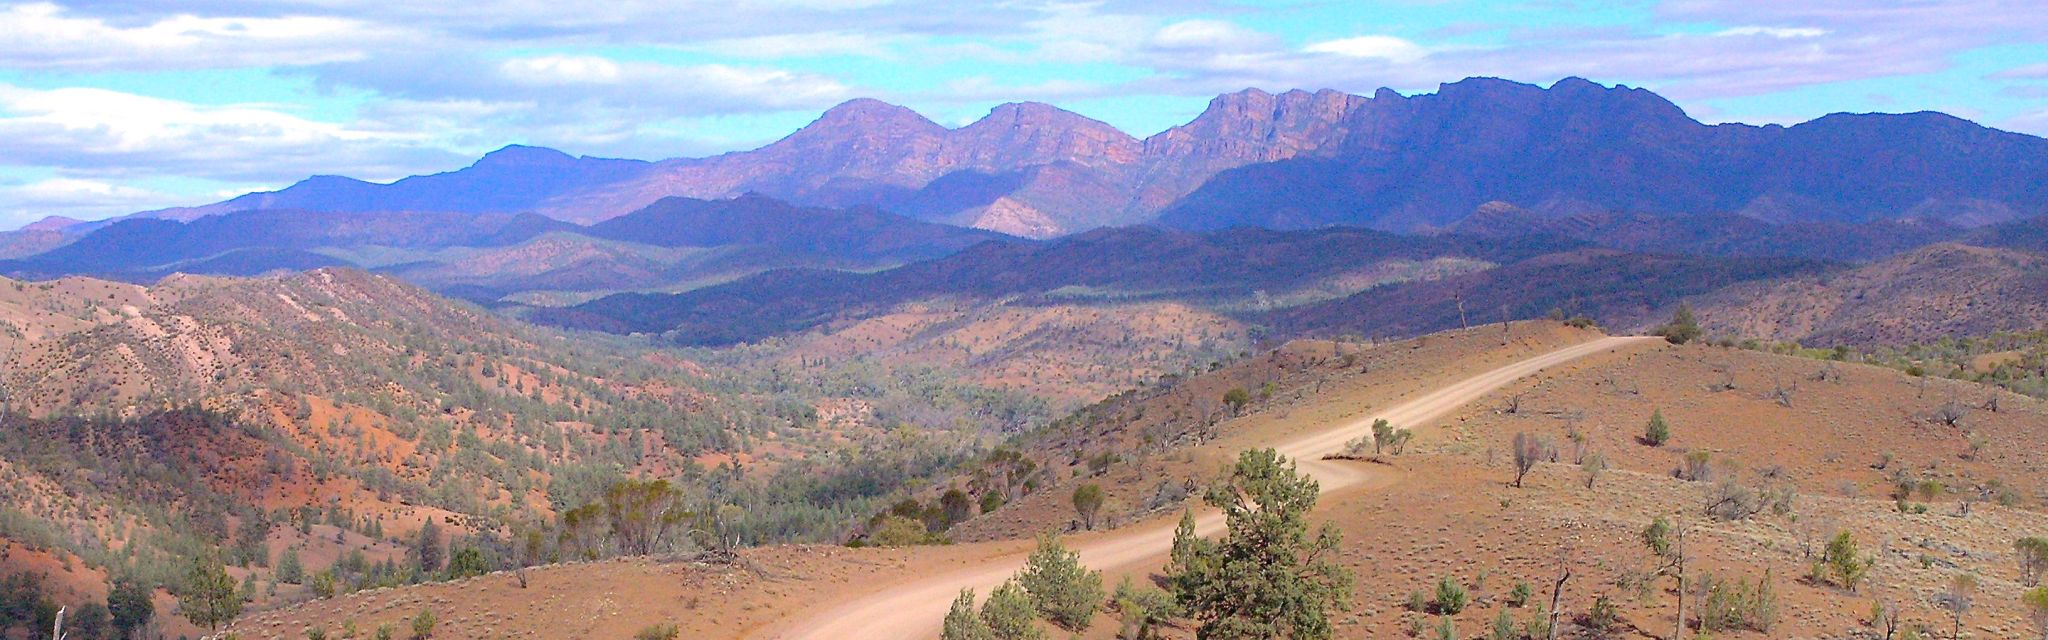 Flinders Ranges, part of the Flinders Ranges Lake Eyre Red Centre Tour